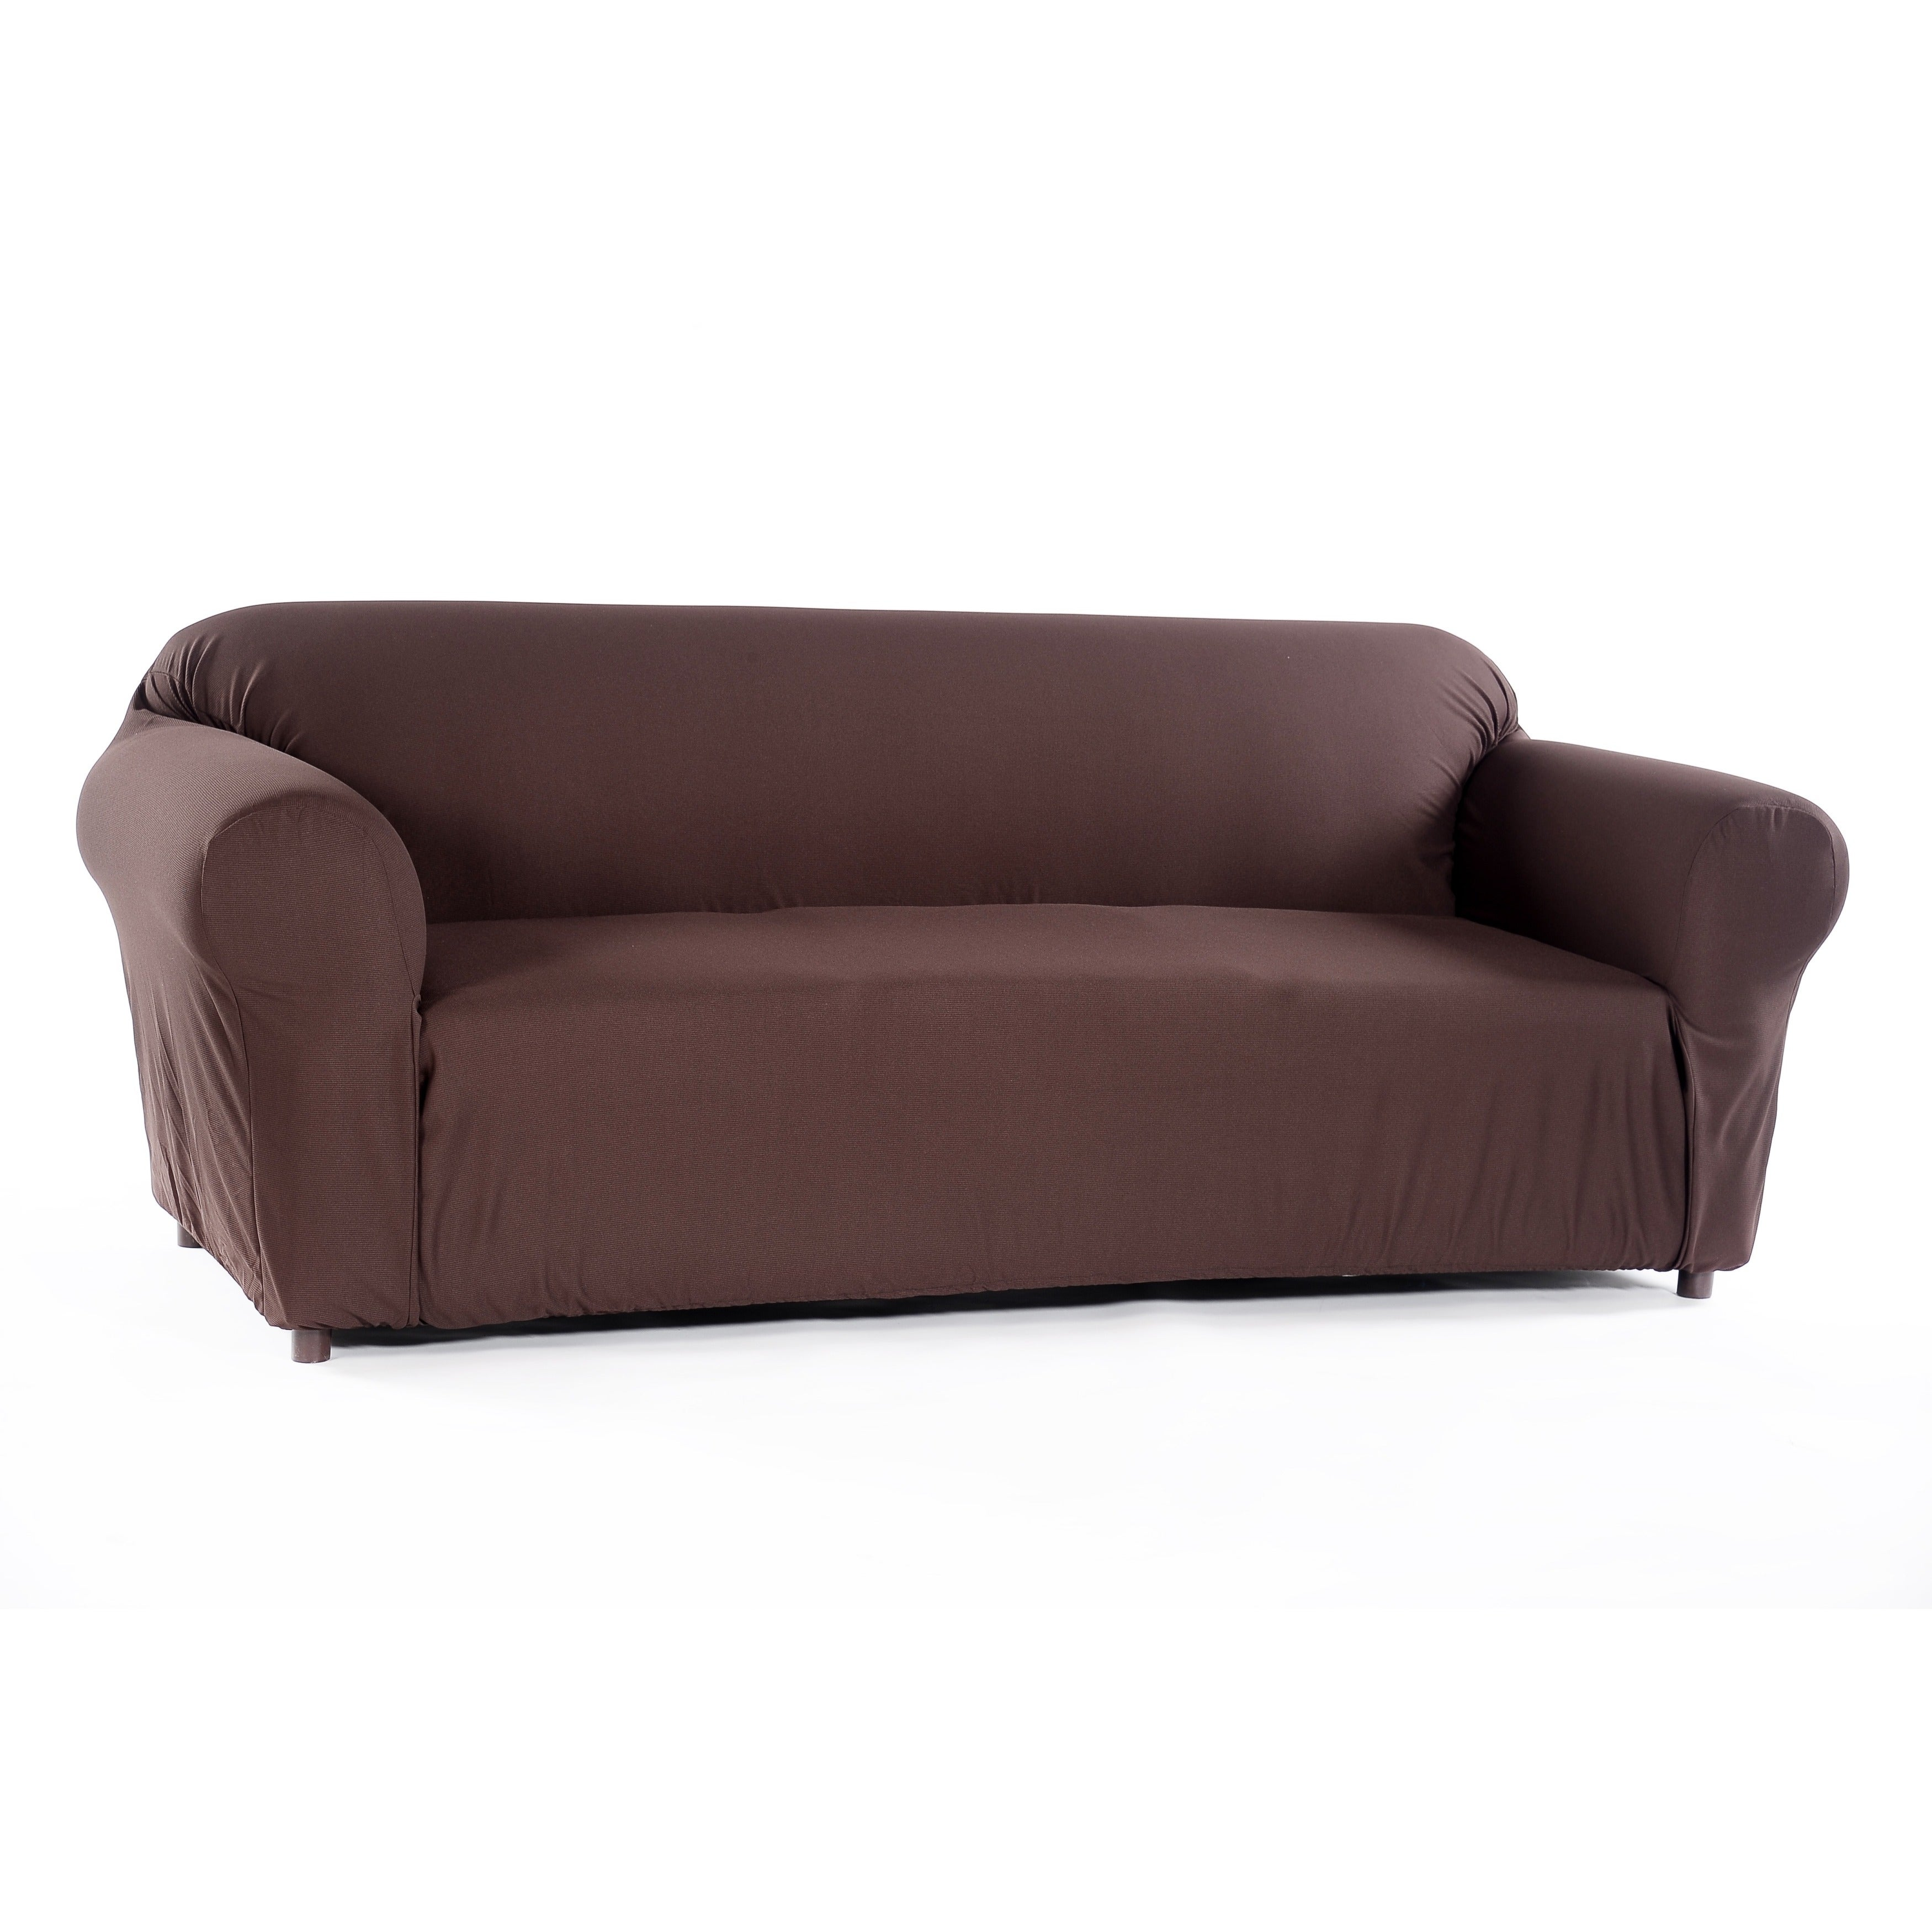 Excellent Stretch Waffle Sofa Slipcover Gmtry Best Dining Table And Chair Ideas Images Gmtryco